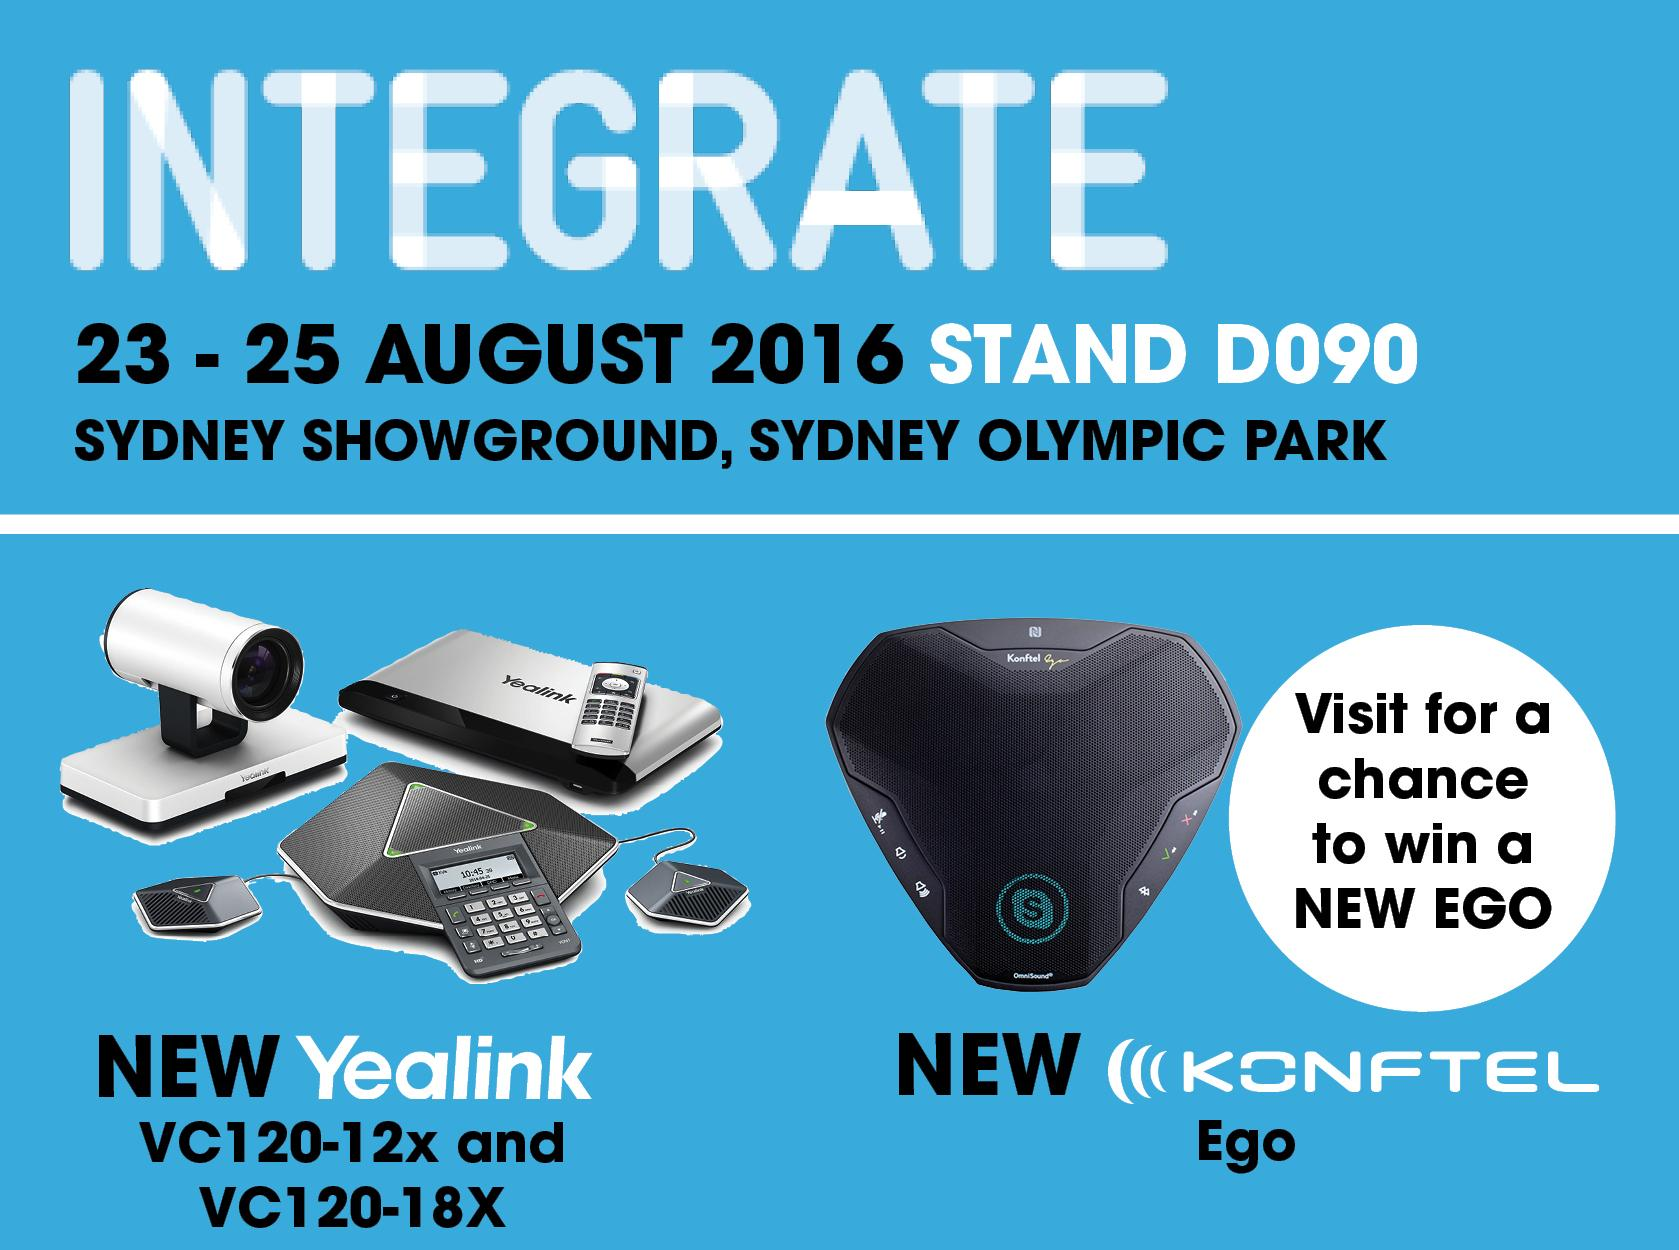 You're invited to Integrate 2016!